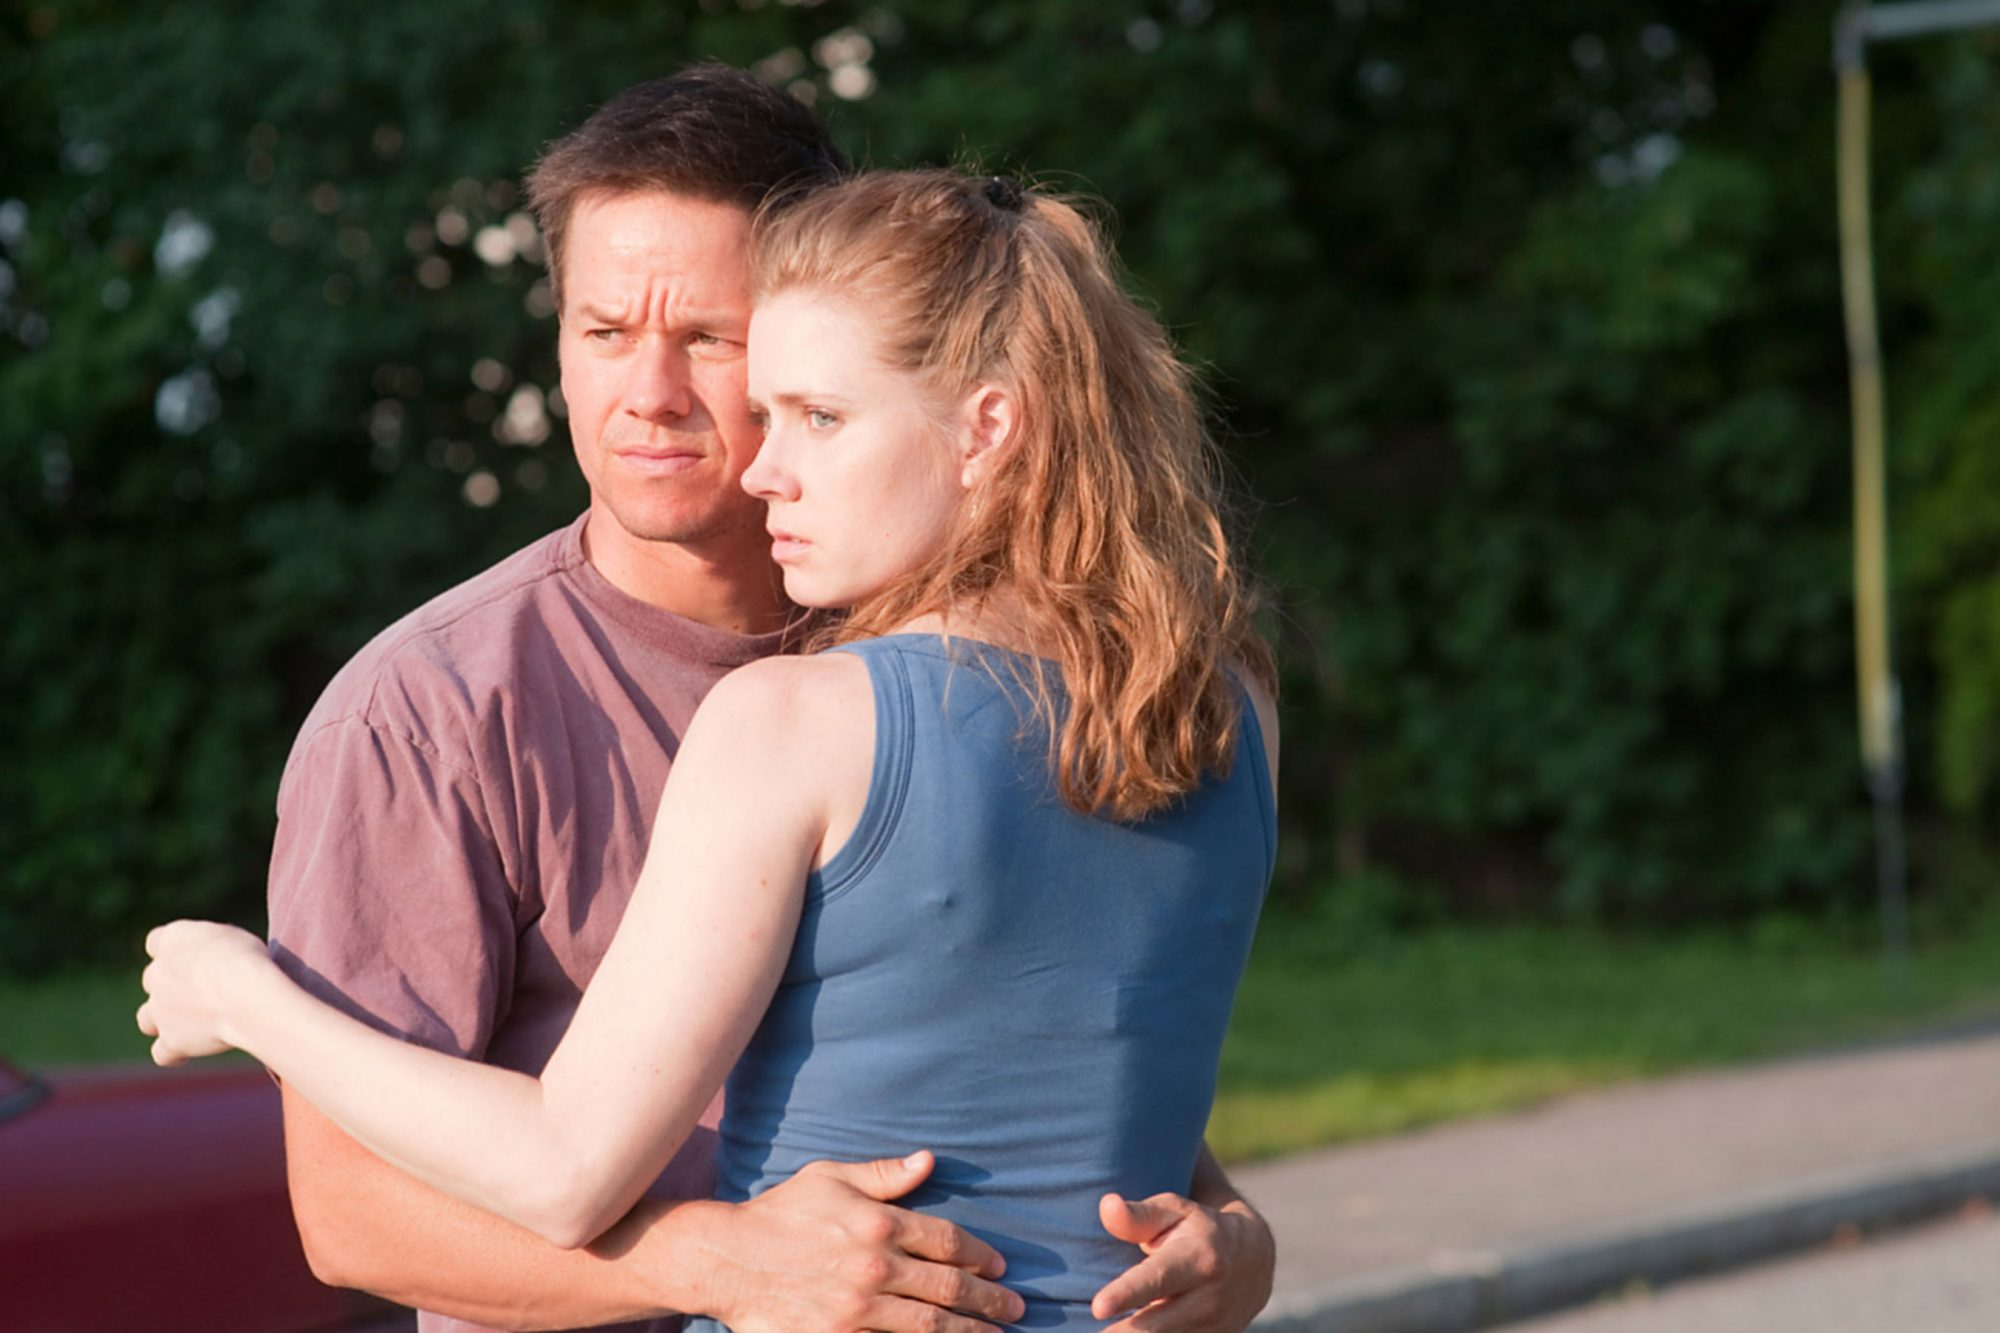 THE FIGHTER, l-r: Mark Wahlberg, Amy Adams, 2010, ph: Jojo Whilden/©Paramount Pictures/courtesy Ever